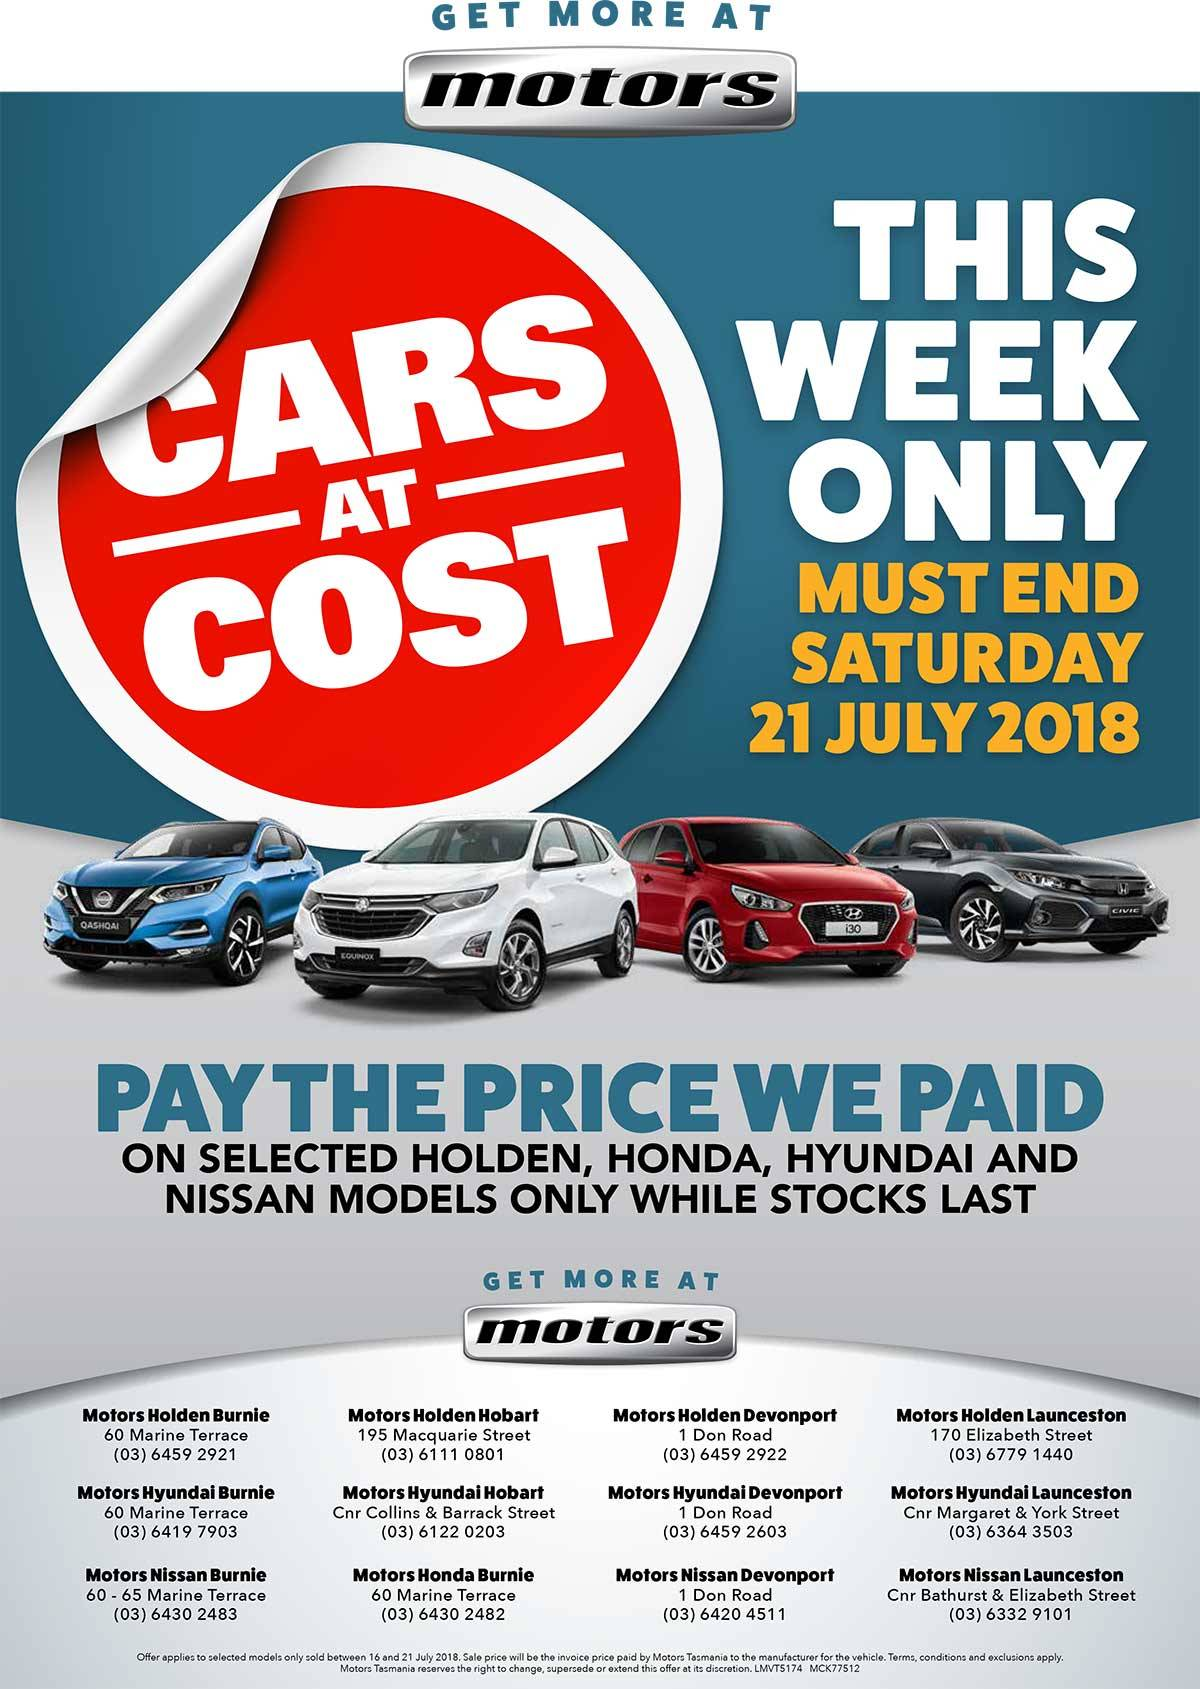 Cars At Cost Special